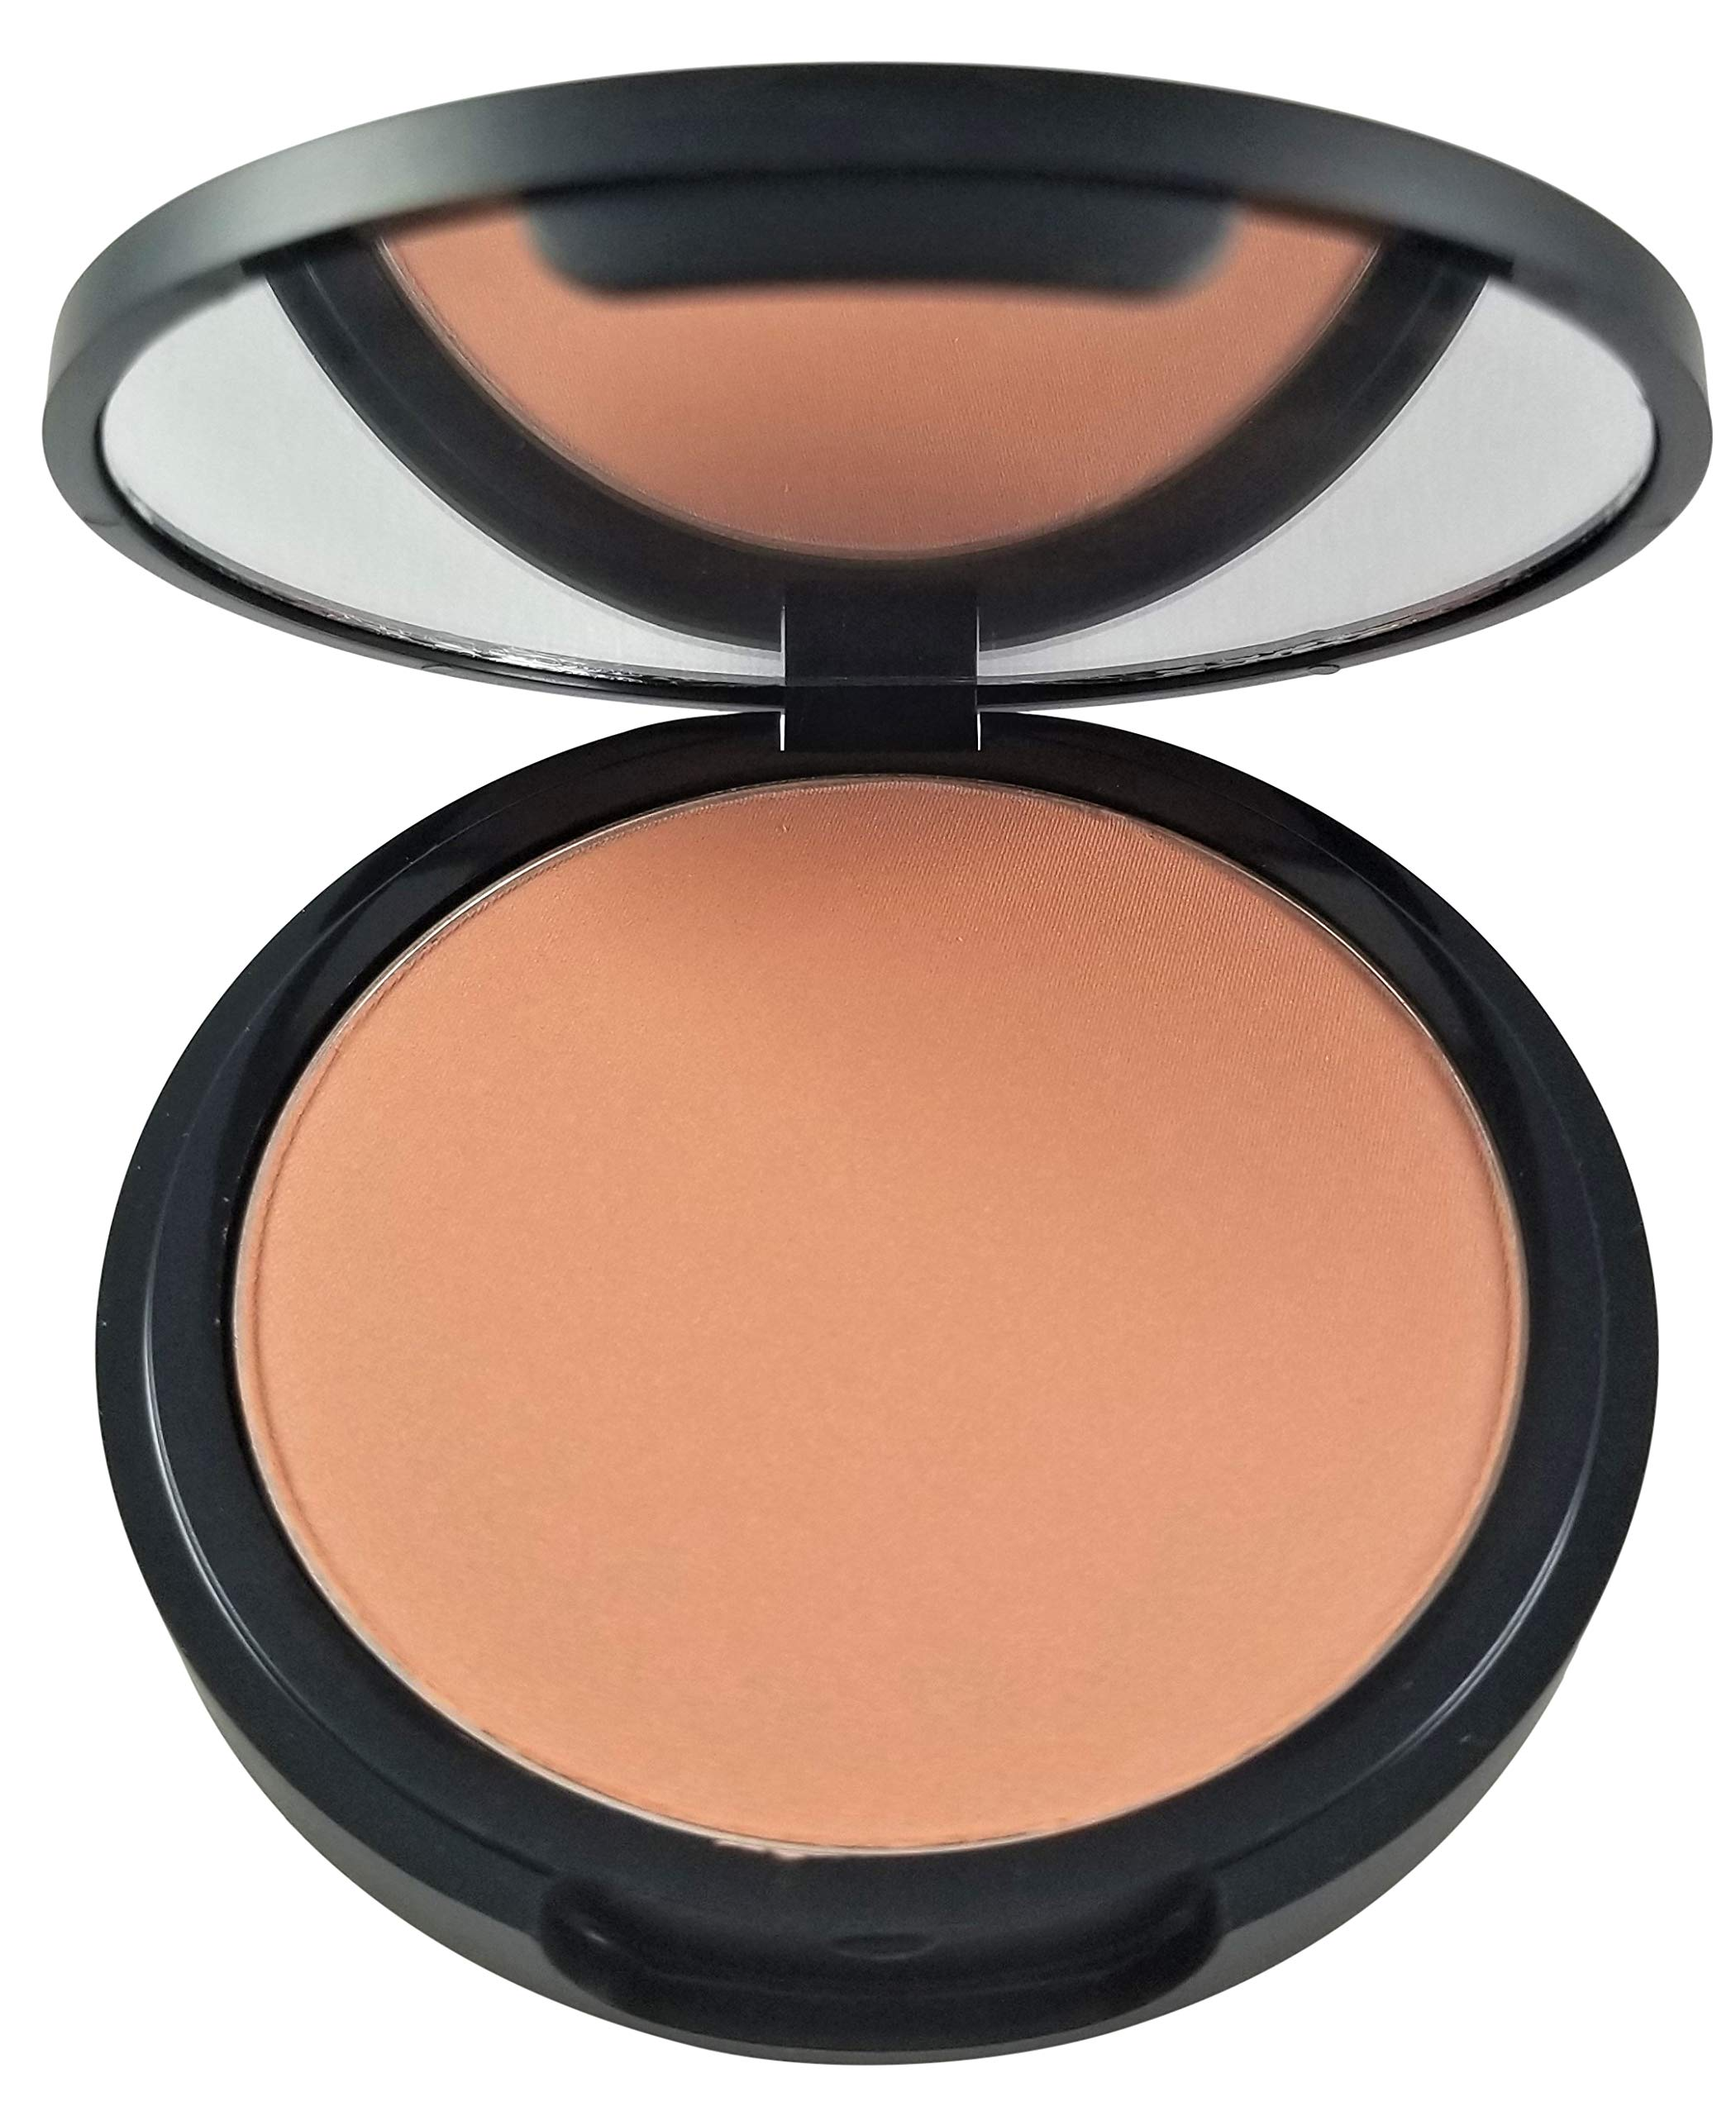 Luxury By Sofia Premium Pressed Bronzer [6 Available Shades] | Natural &Organic Skin Enhancing Ingredients | Hypoallergenic, Highly Pigmented Formula For A Youthful, Sun-Kissed Look (Bahama Glow)